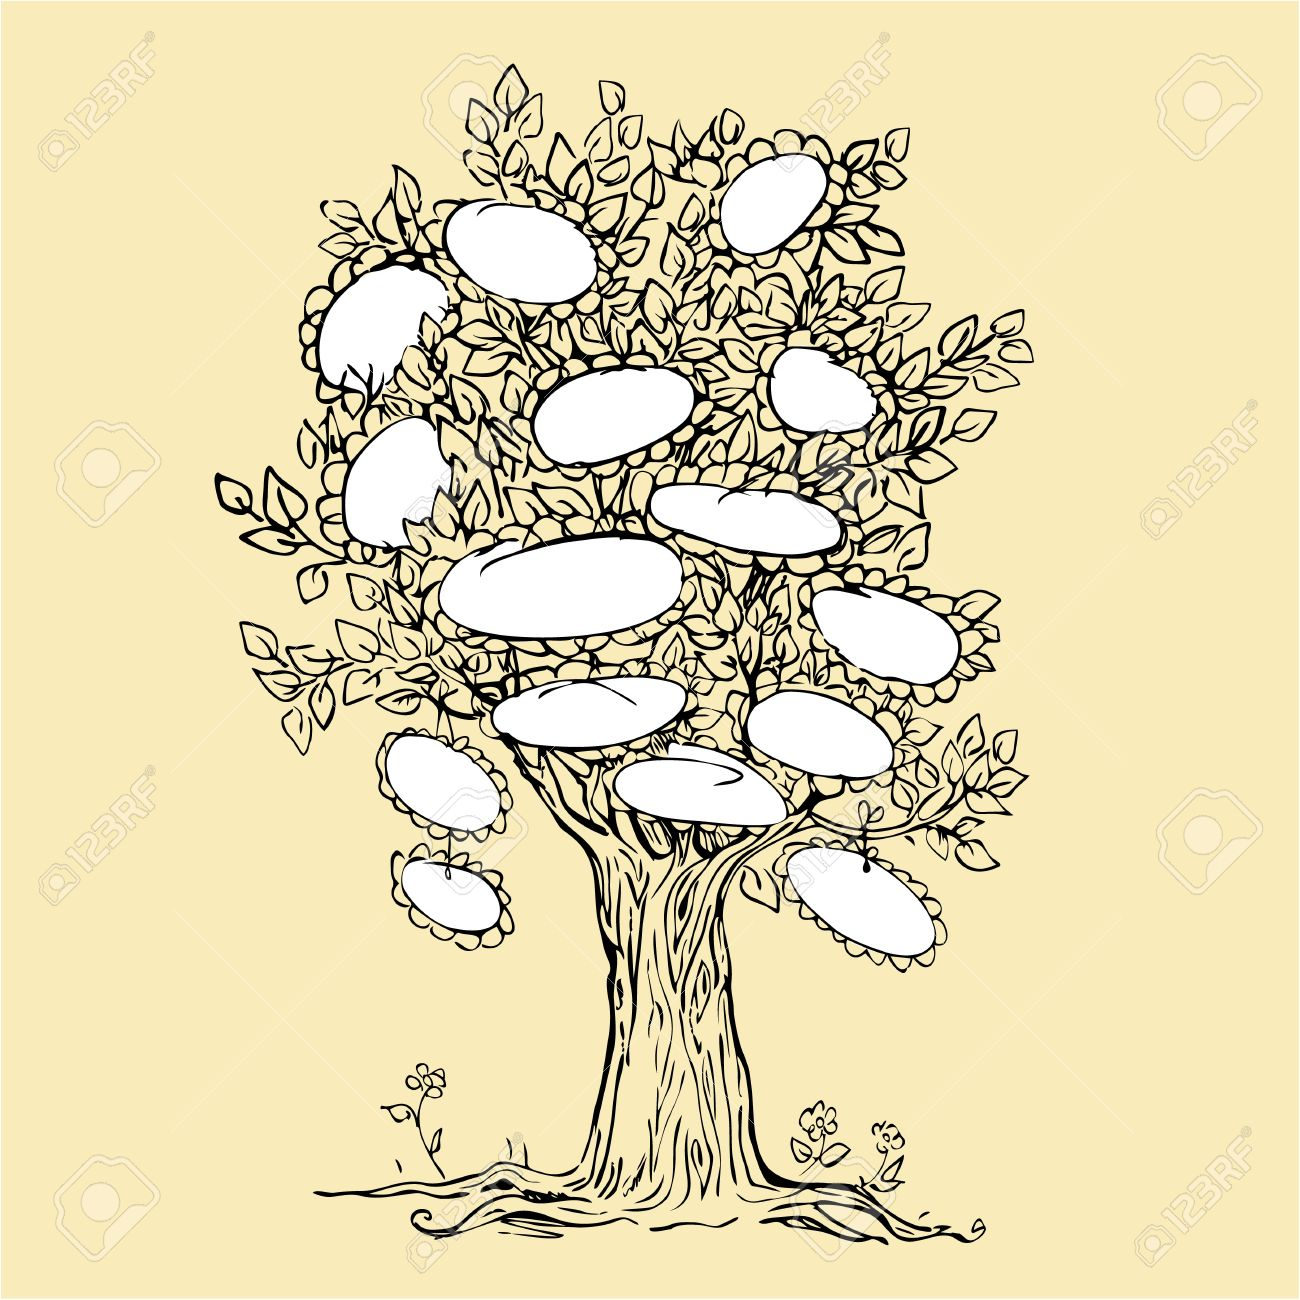 1300x1300 Family Tree Design With Empty Frames For Text